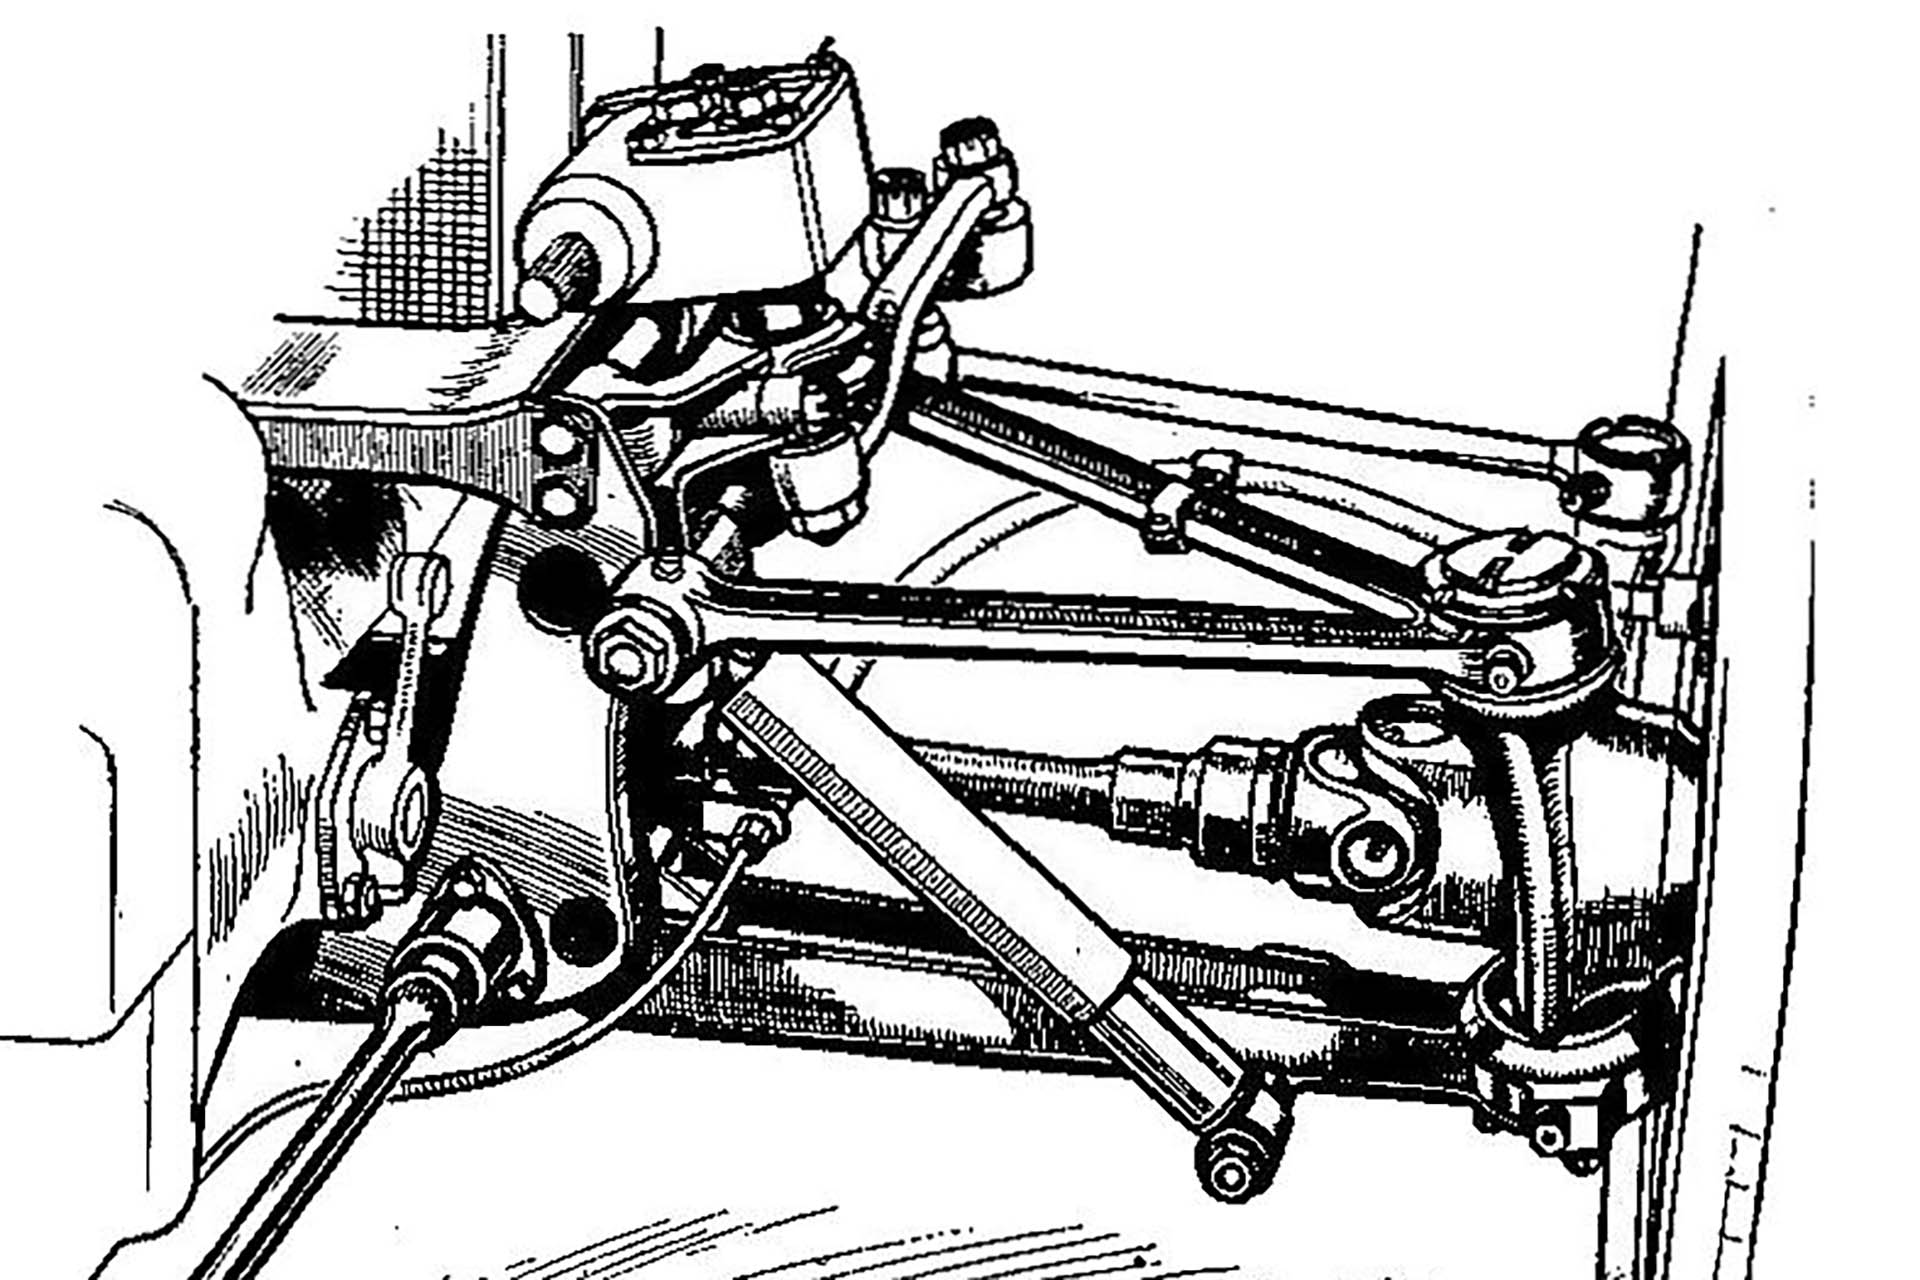 Independent front suspension